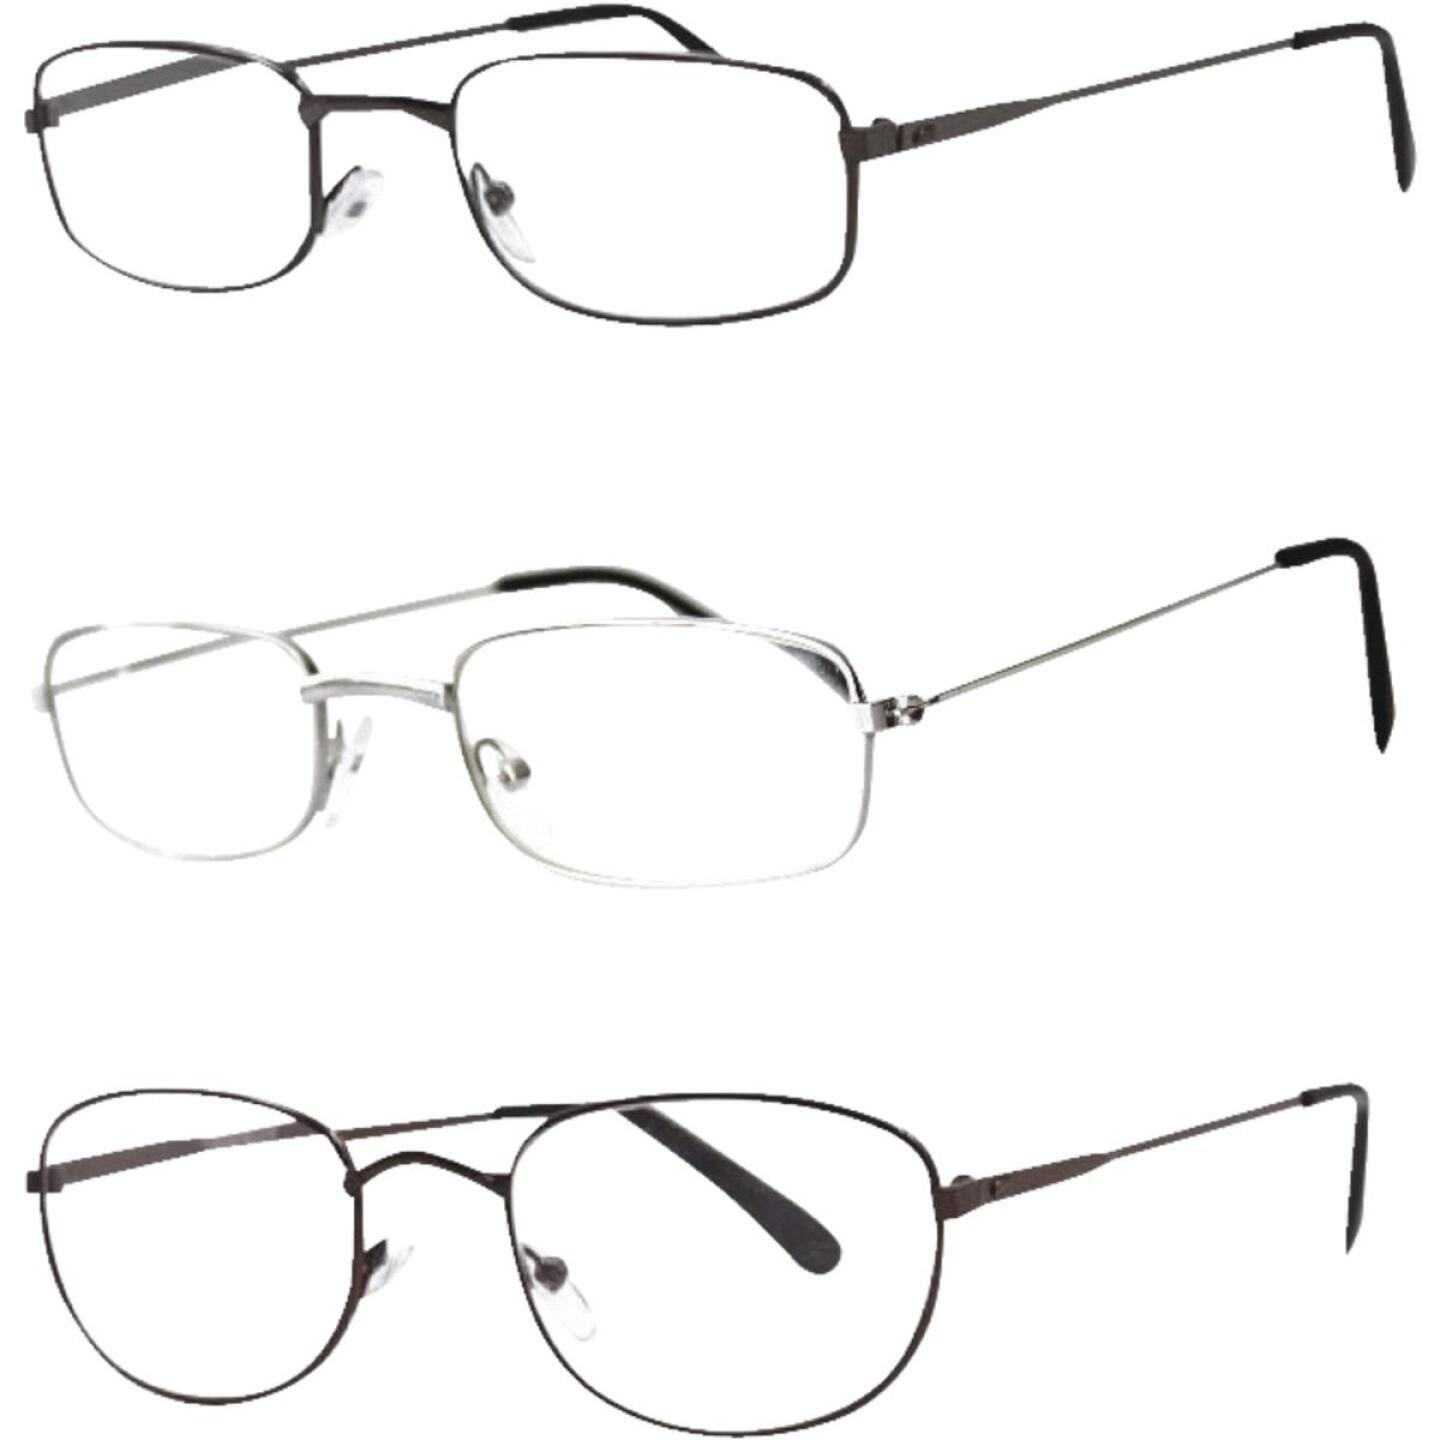 Axiom SEEVIX Assorted Metal Reading Glasses Image 1